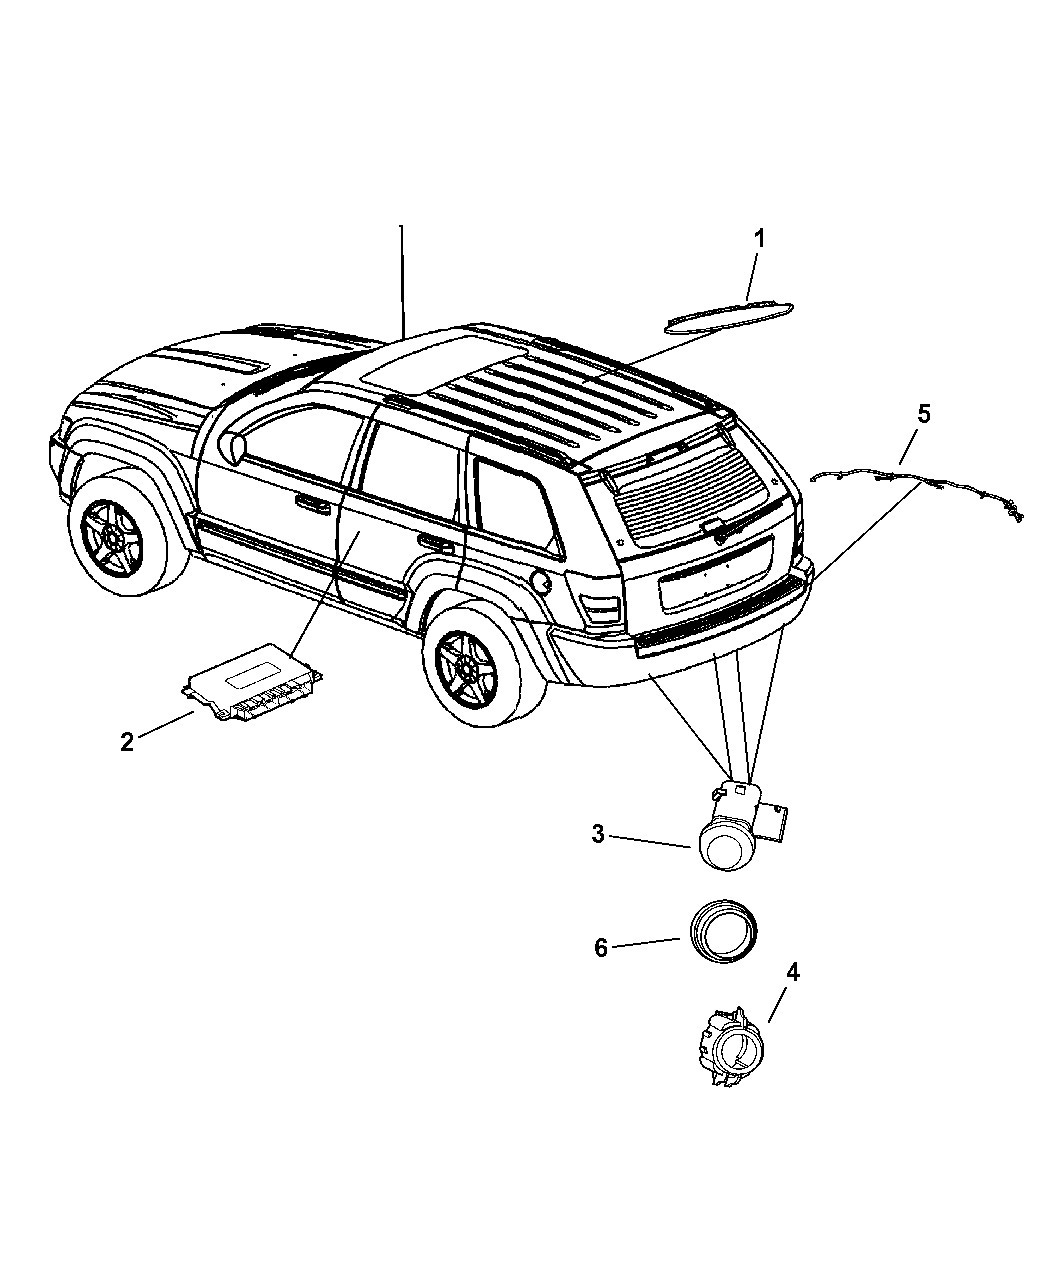 2005 jeep grand cherokee park assist detection system